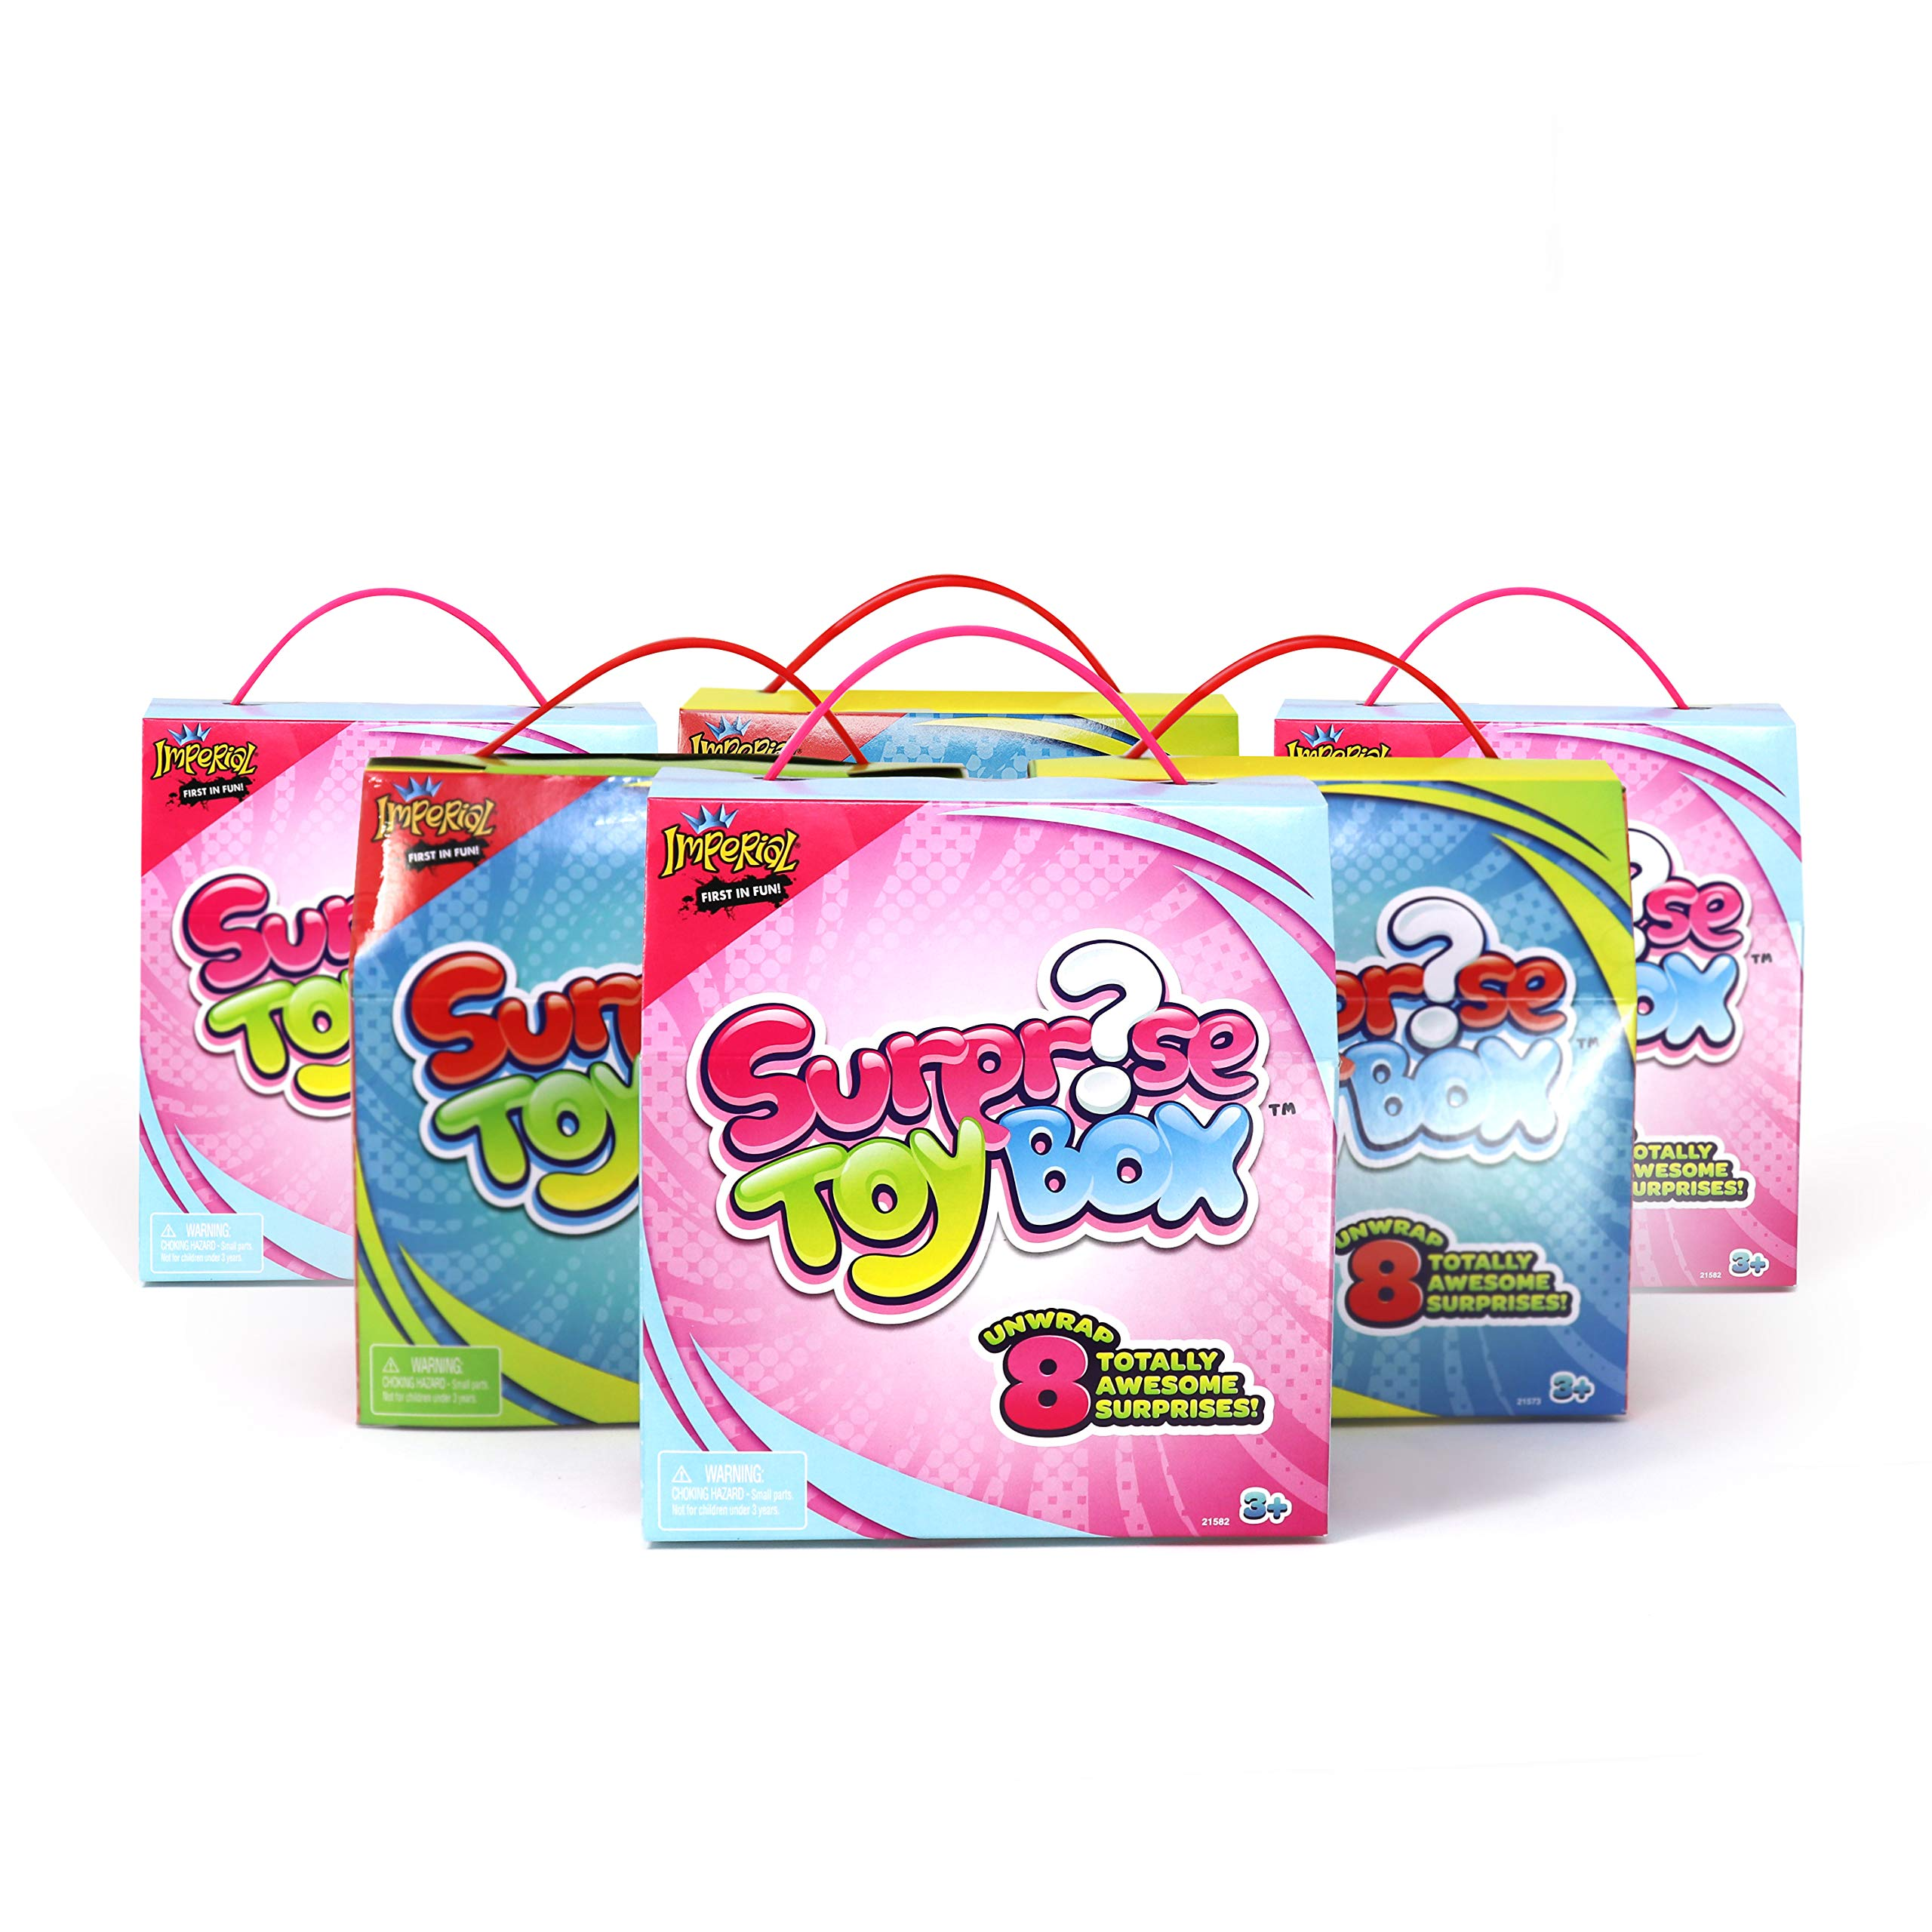 Surprise Toy Boxes - Party Pack of 6 Boxes